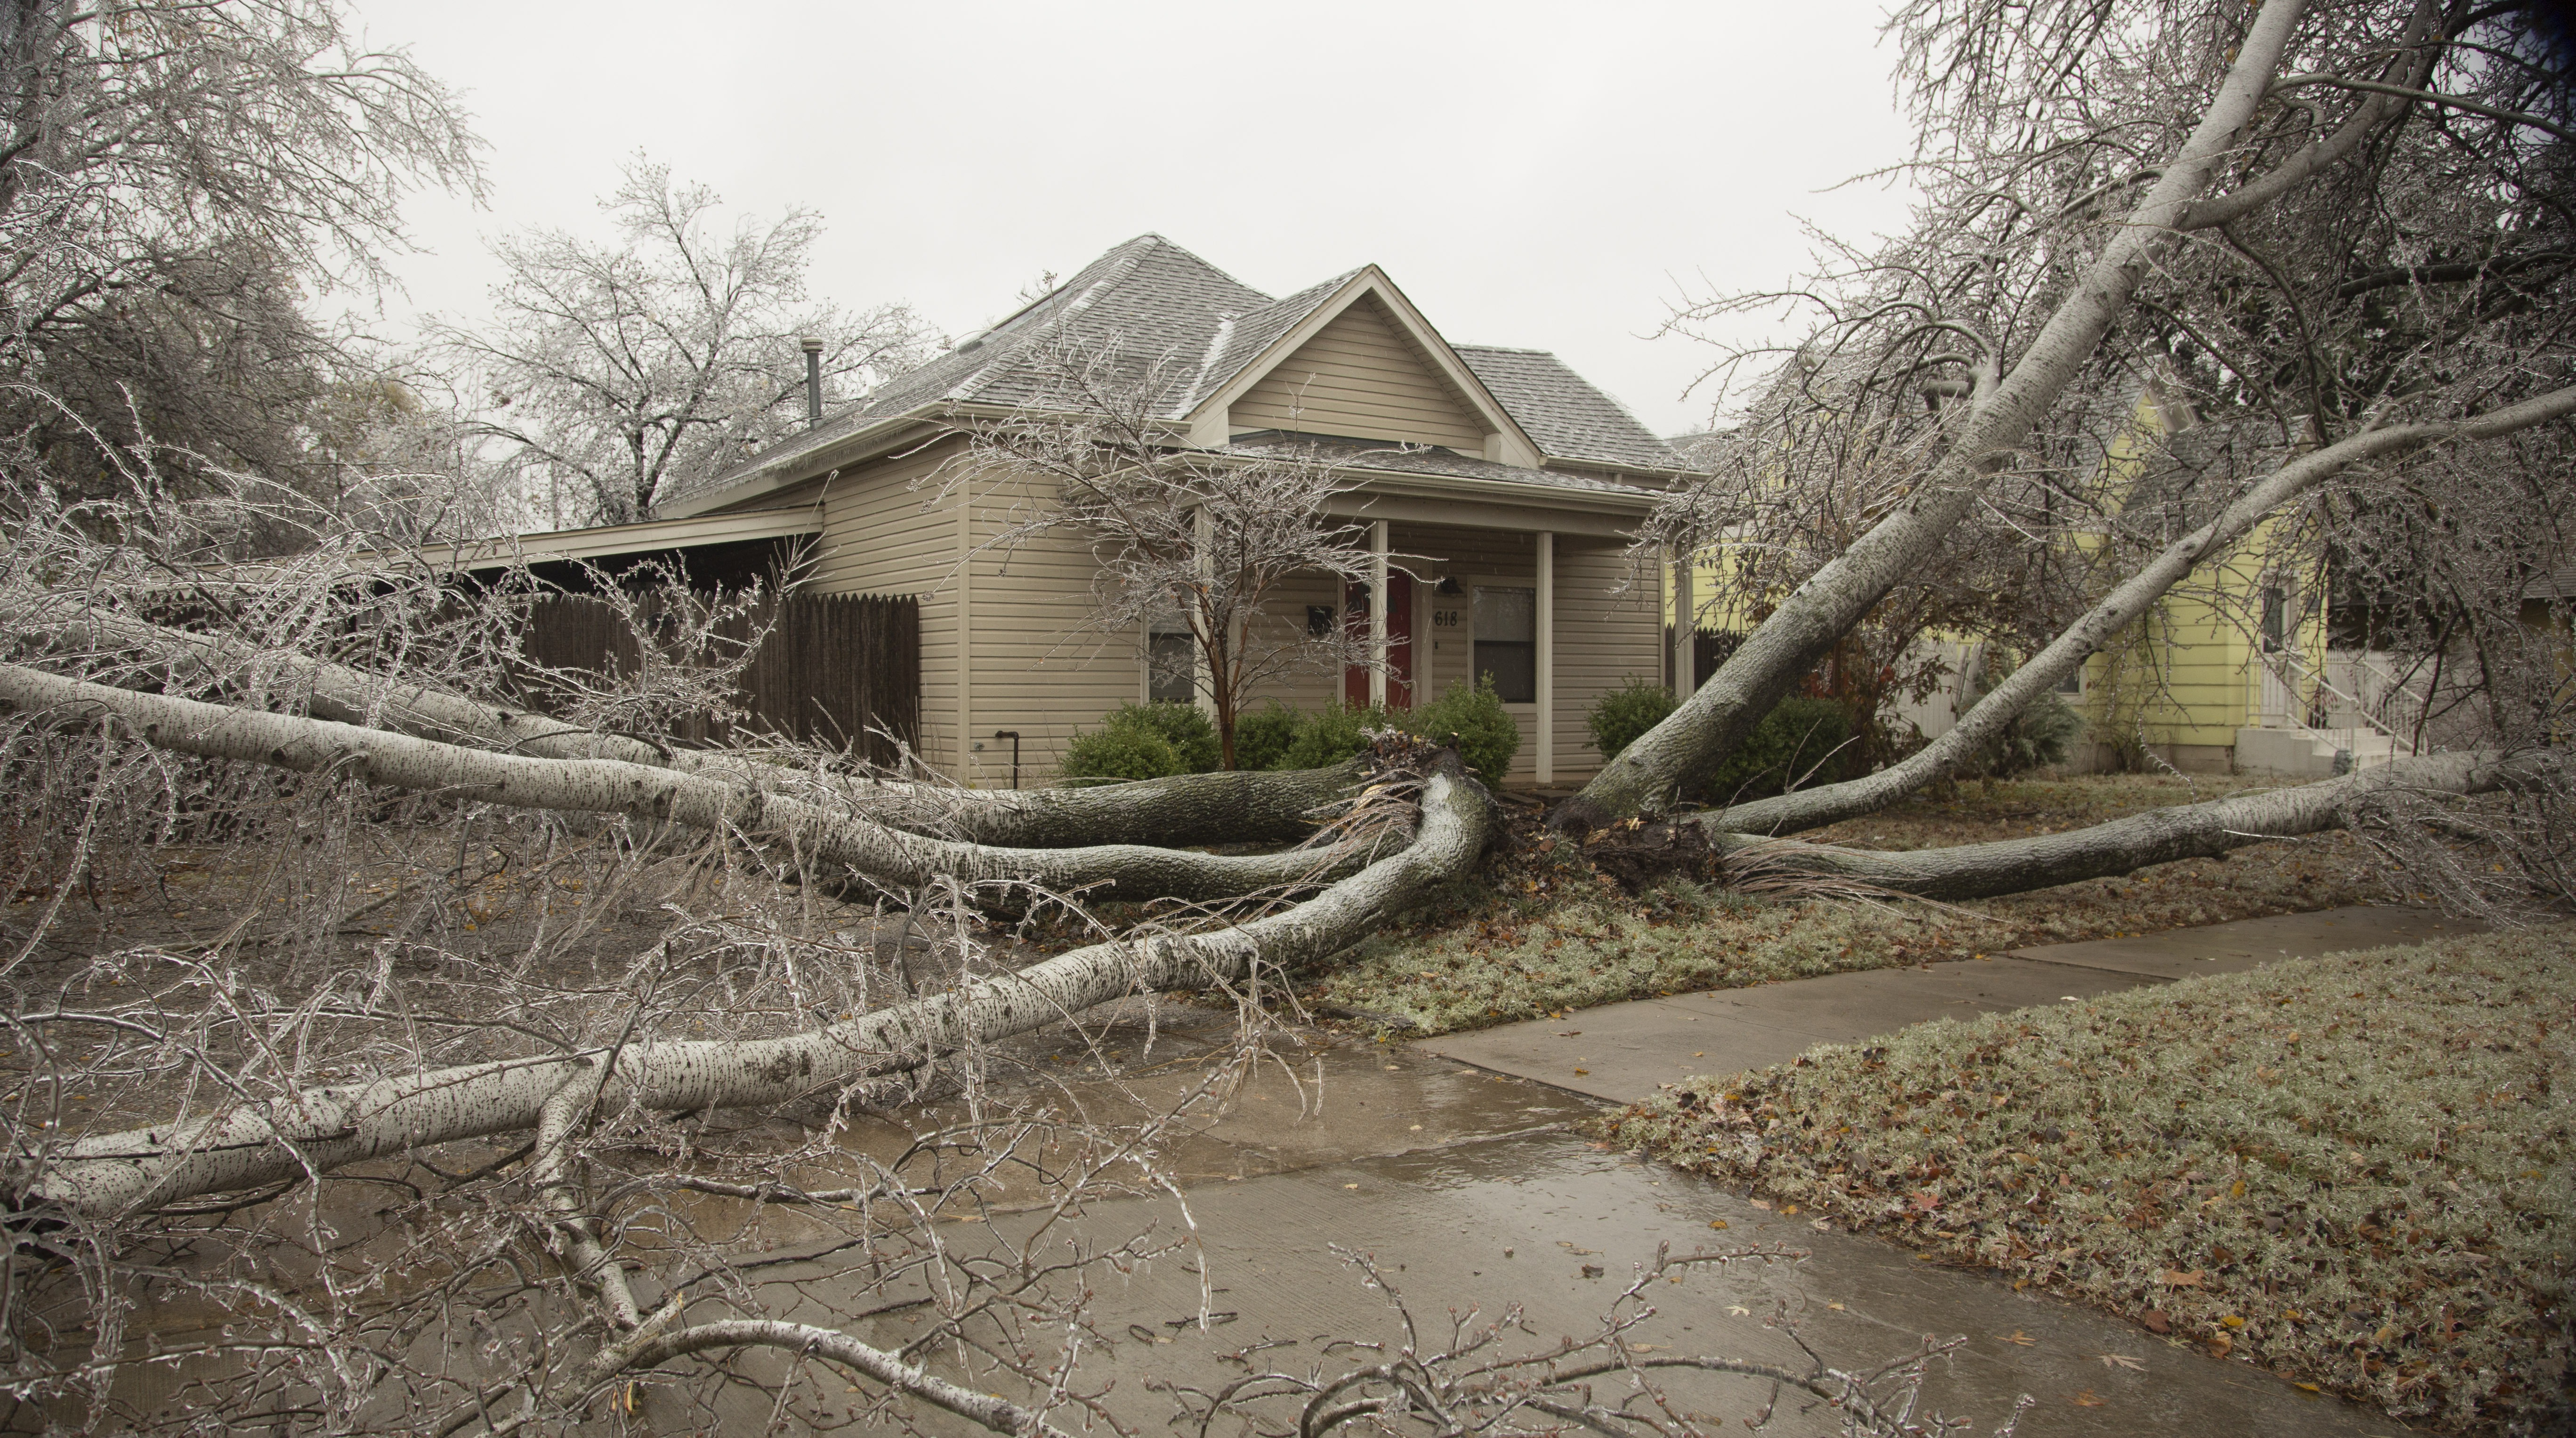 A 50 foot tall tree covers the front yard of a house after it broke in half due to ice an ice storm on November 28, 2015 in Edmond, Oklahoma.